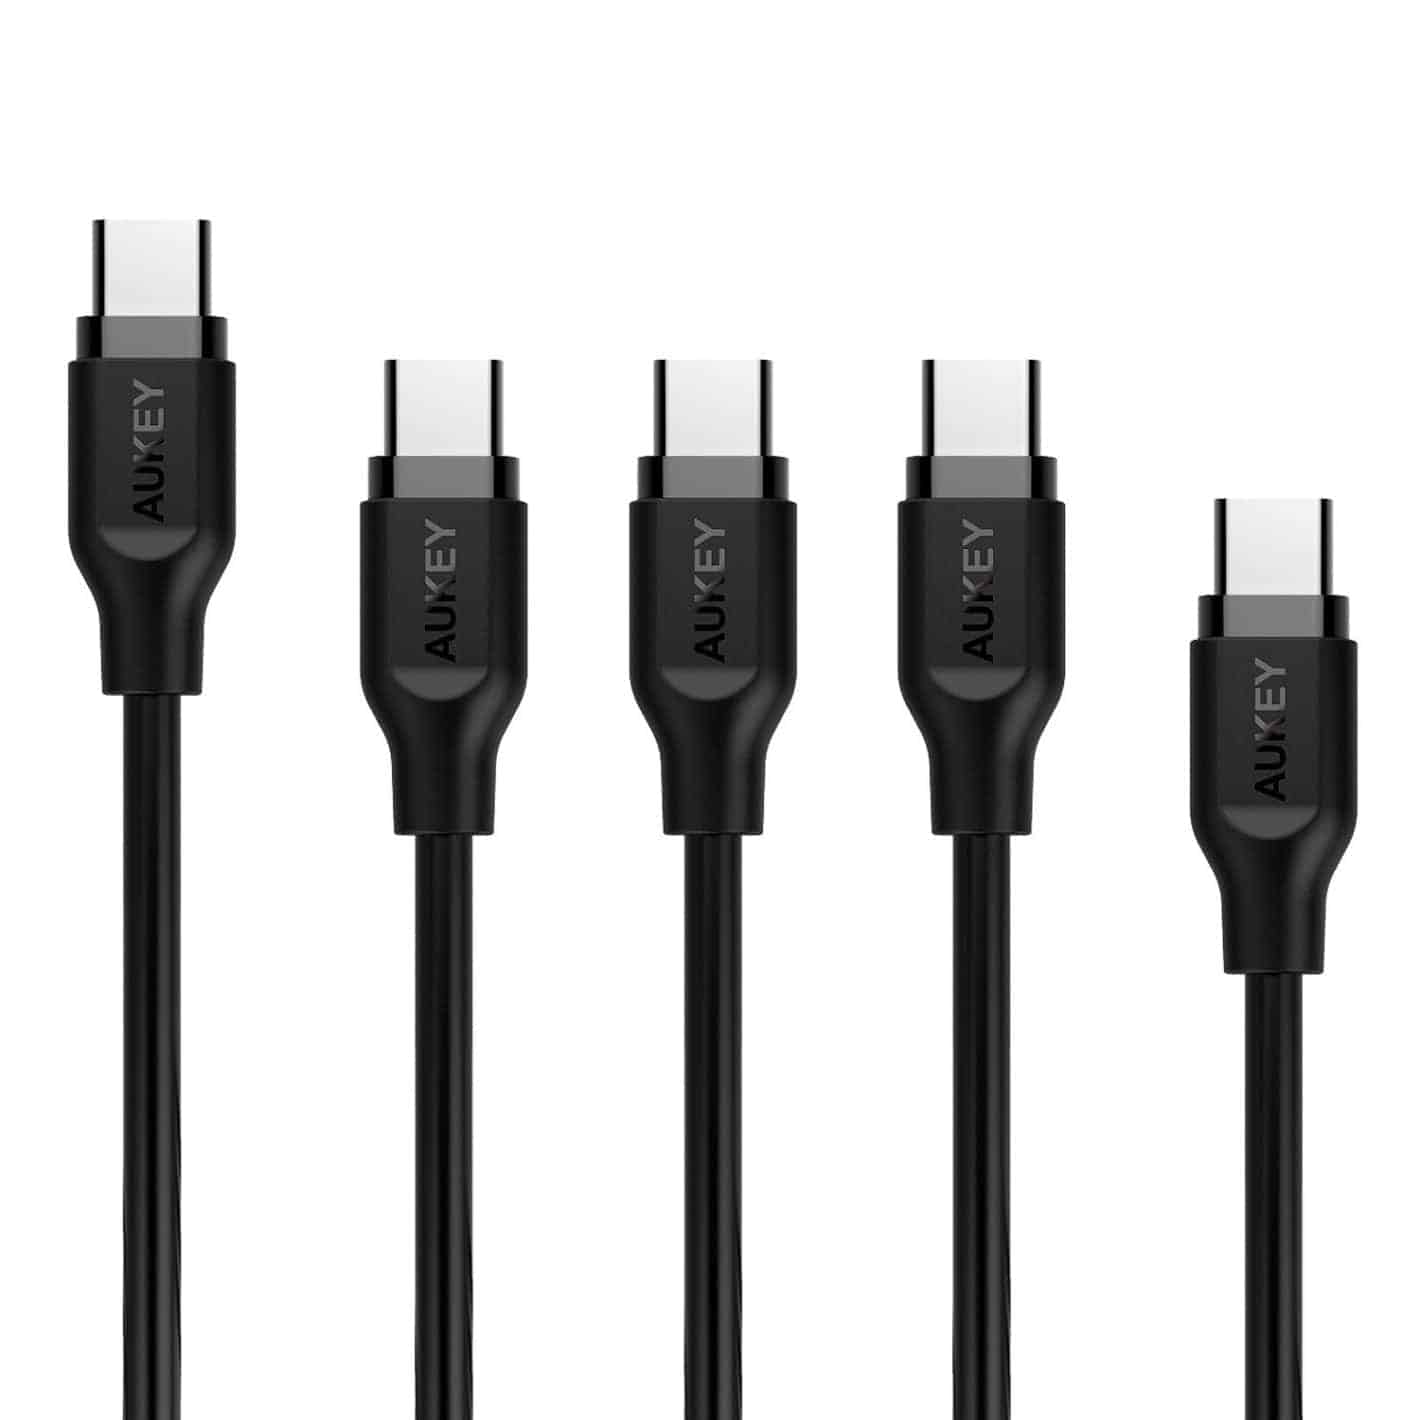 Best usb c cables for samsung galaxy s8 s8 plus may 2017 aukey has a five pack of usb a to usb c cables here that work great on the galaxy s8 in this pack of five you get three different lengths greentooth Gallery